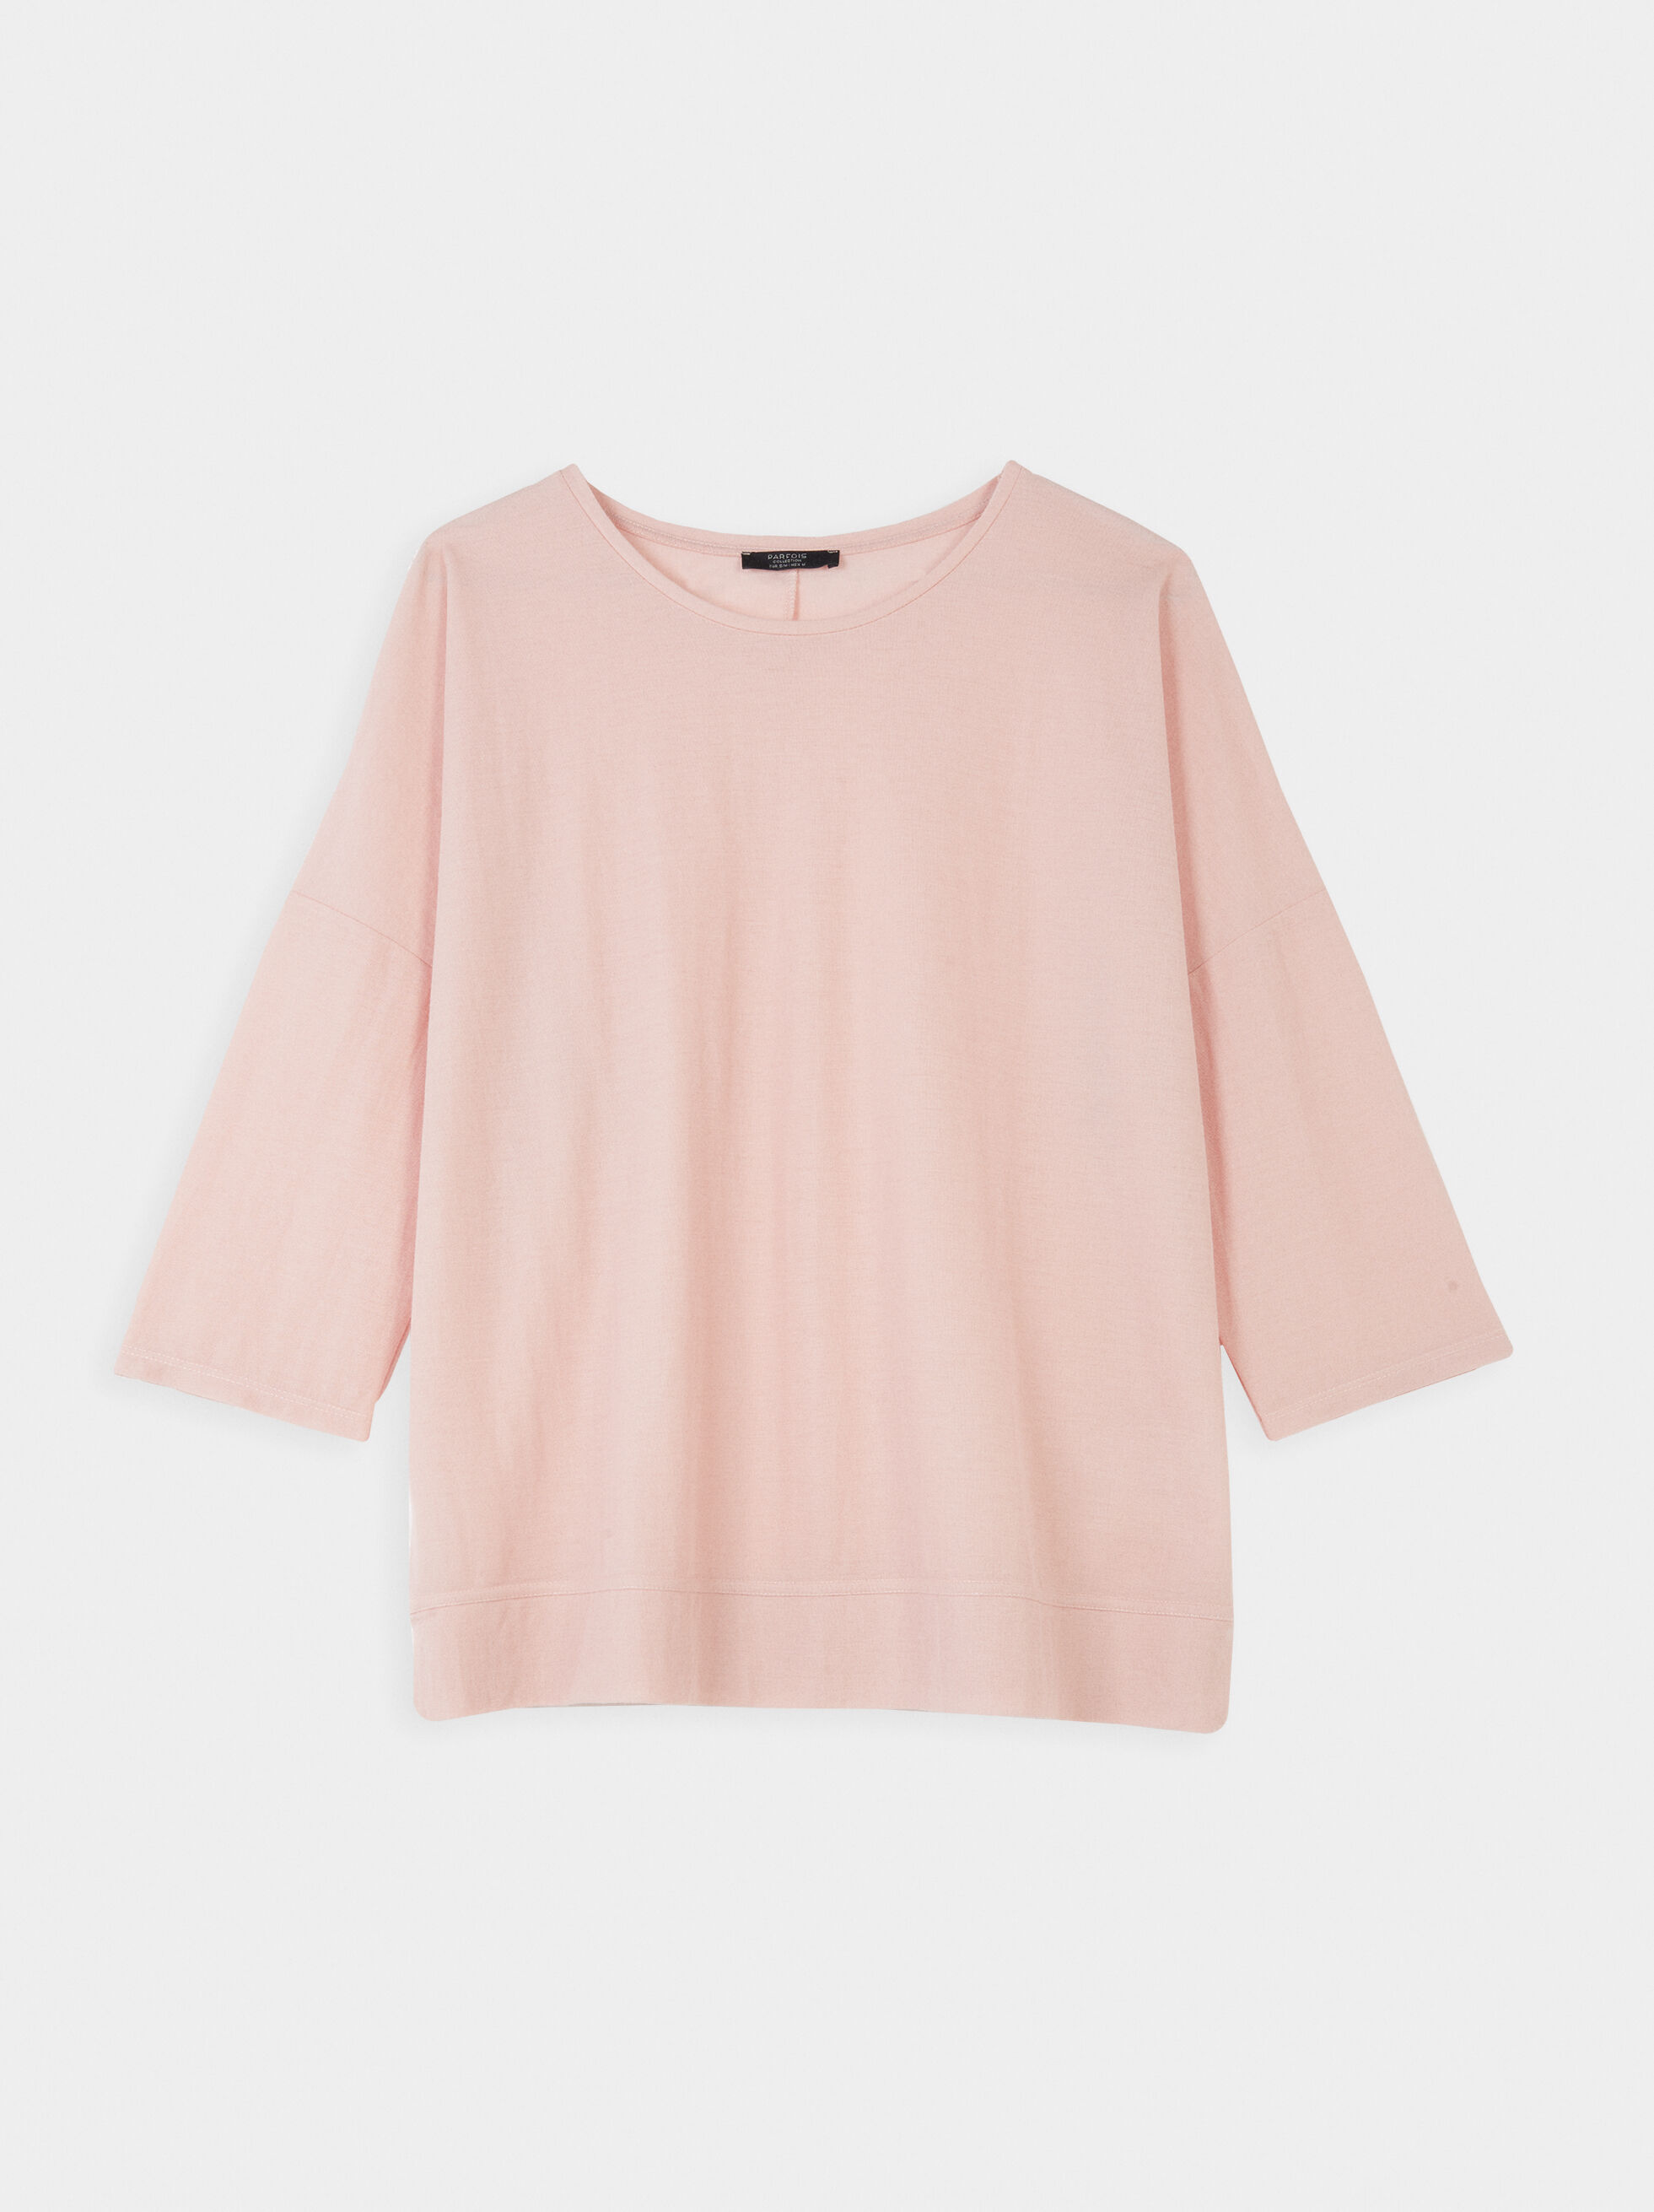 Plain Round Neck T-Shirt, , hi-res